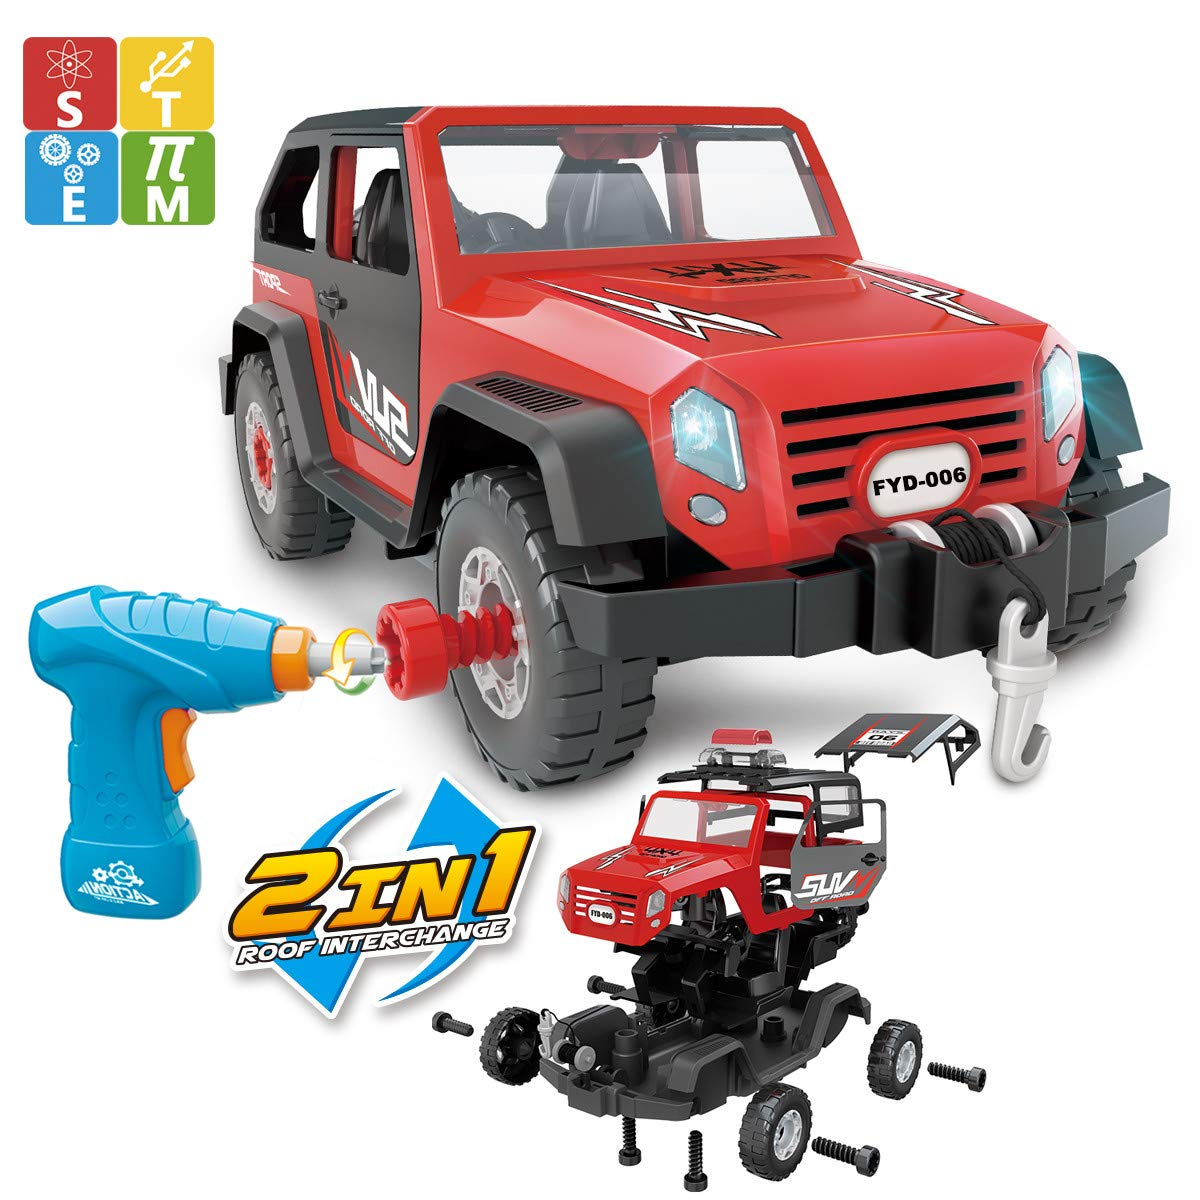 FYD Take Apart Jeep Car STEM Learning Assembly Playset with Functional Battery-Powered Drill - Early Childhood Developmental Skills Construction Toy for Kids Aged 3 and up by FYD